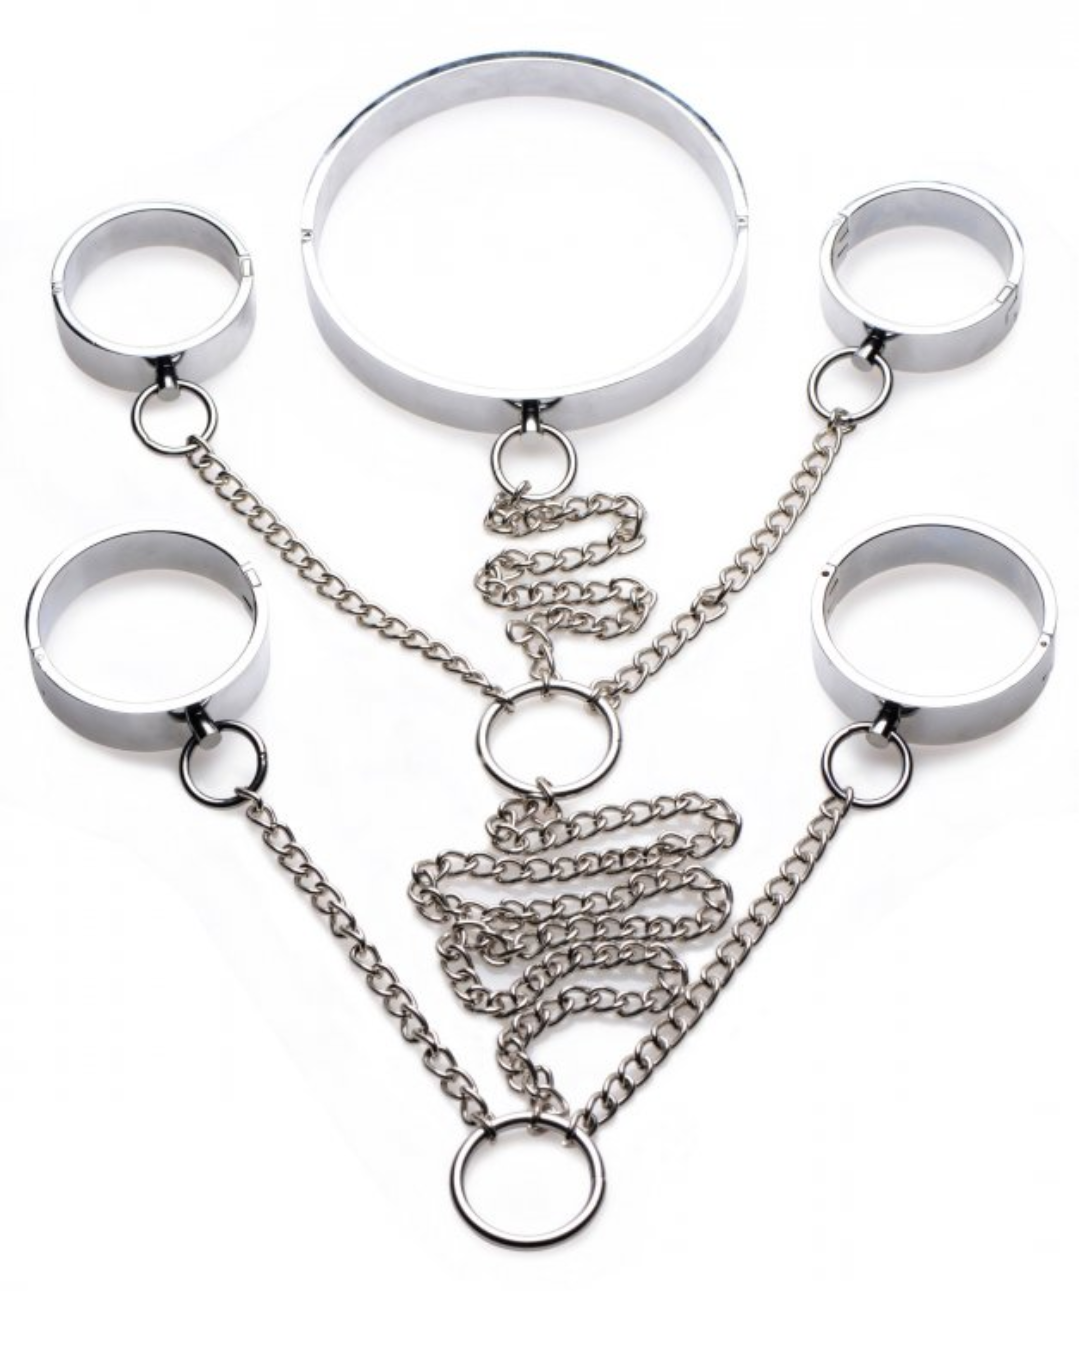 5 Piece Stainless Steel Shackle Set (Small)